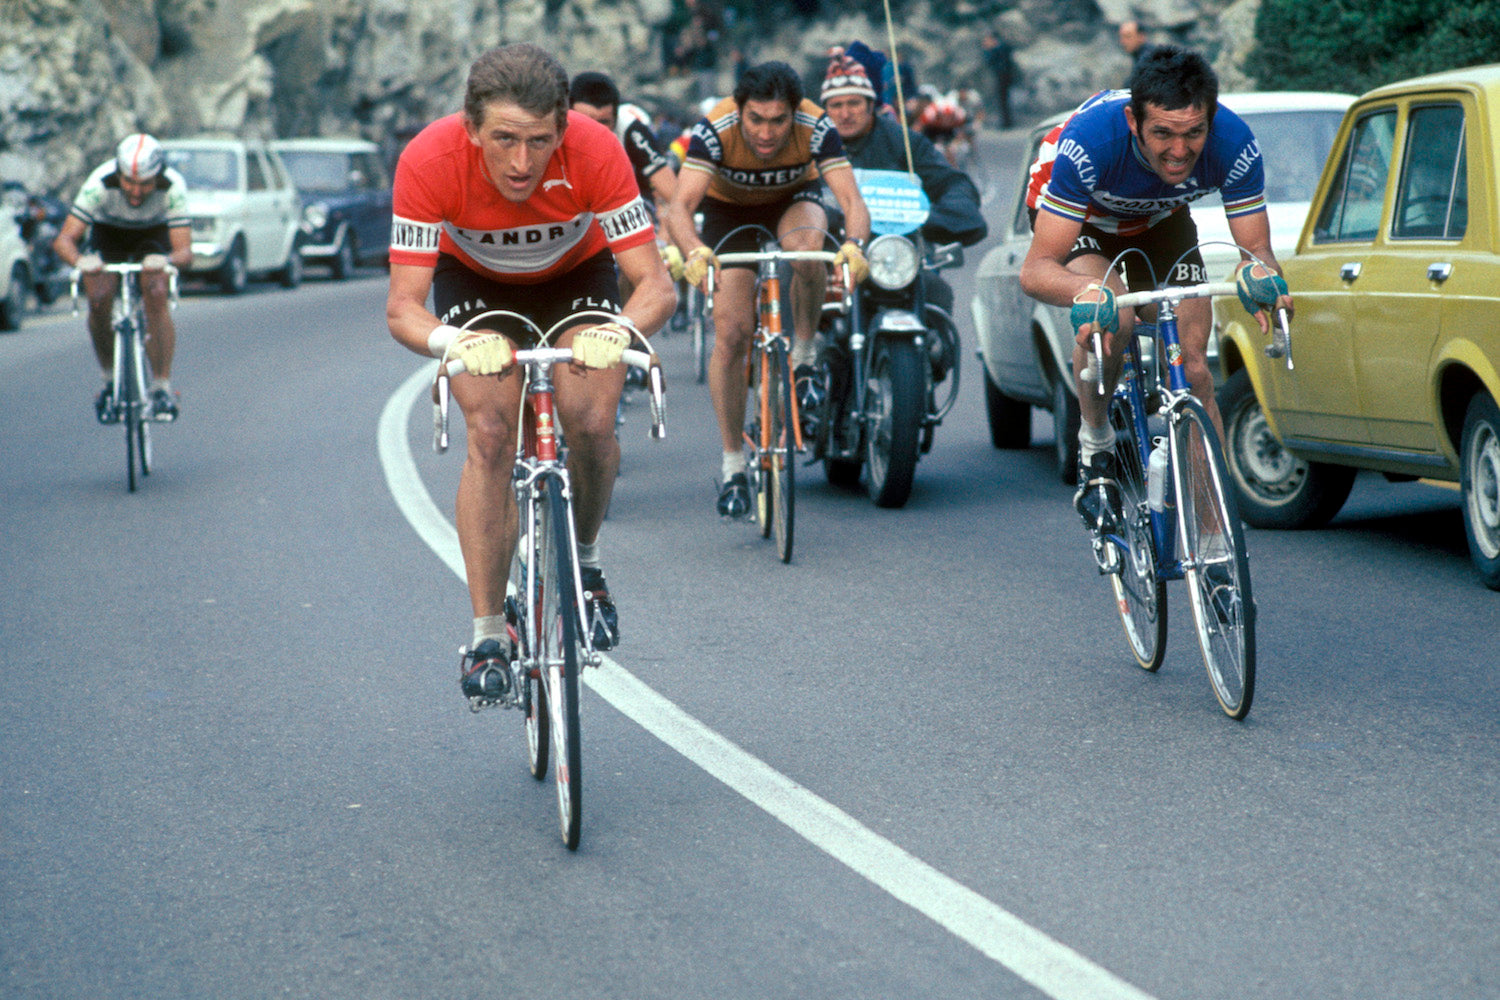 Roger De Vlaeminck, Freddy Maertens and Eddy Merckx at the 1976 edition of Milan San Remo. Photo credits: Offside / L'Equipe.